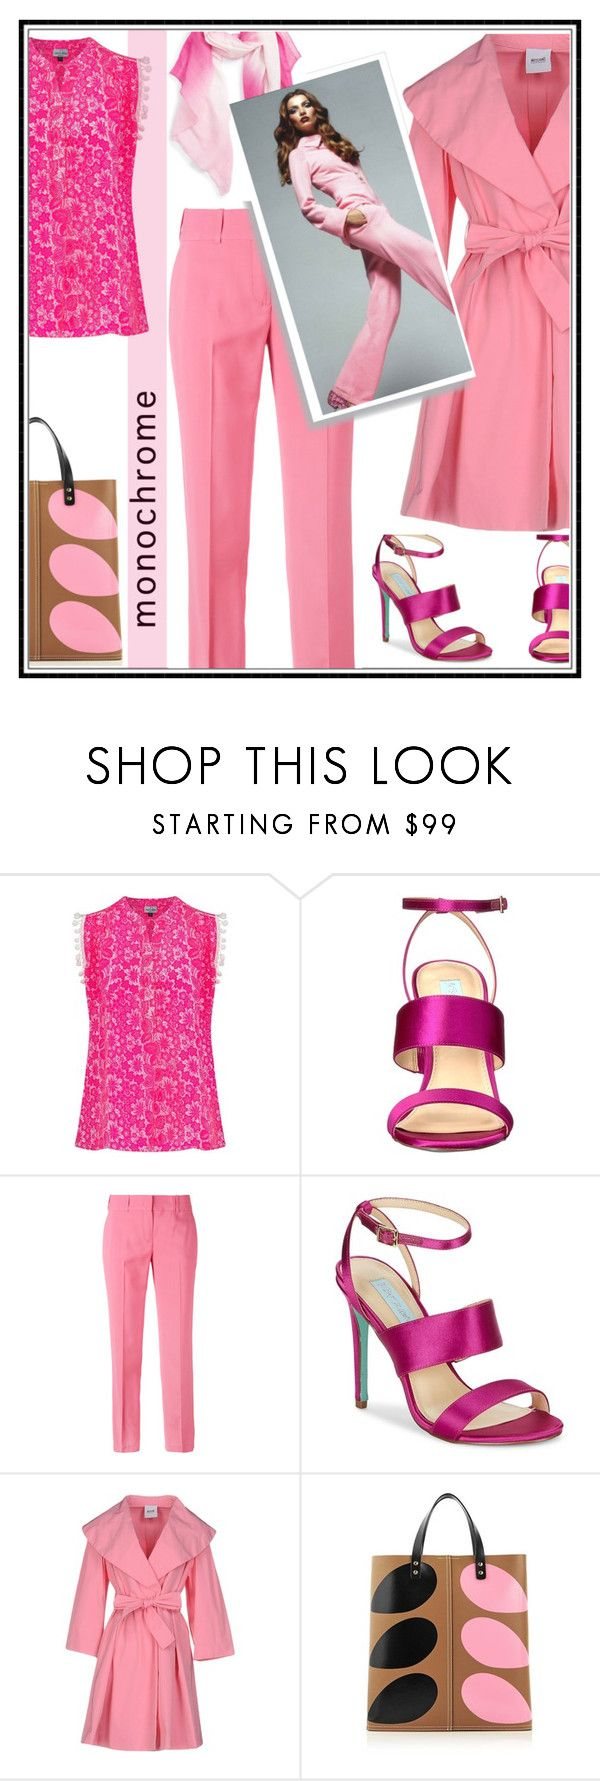 """""""Powerful pink"""" by kleinwillwin ❤ liked on Polyvore featuring Mercy Delta, Betsey Johnson, Ermanno Scervino, Moschino Cheap & Chic, Orla Kiely and Caslon"""